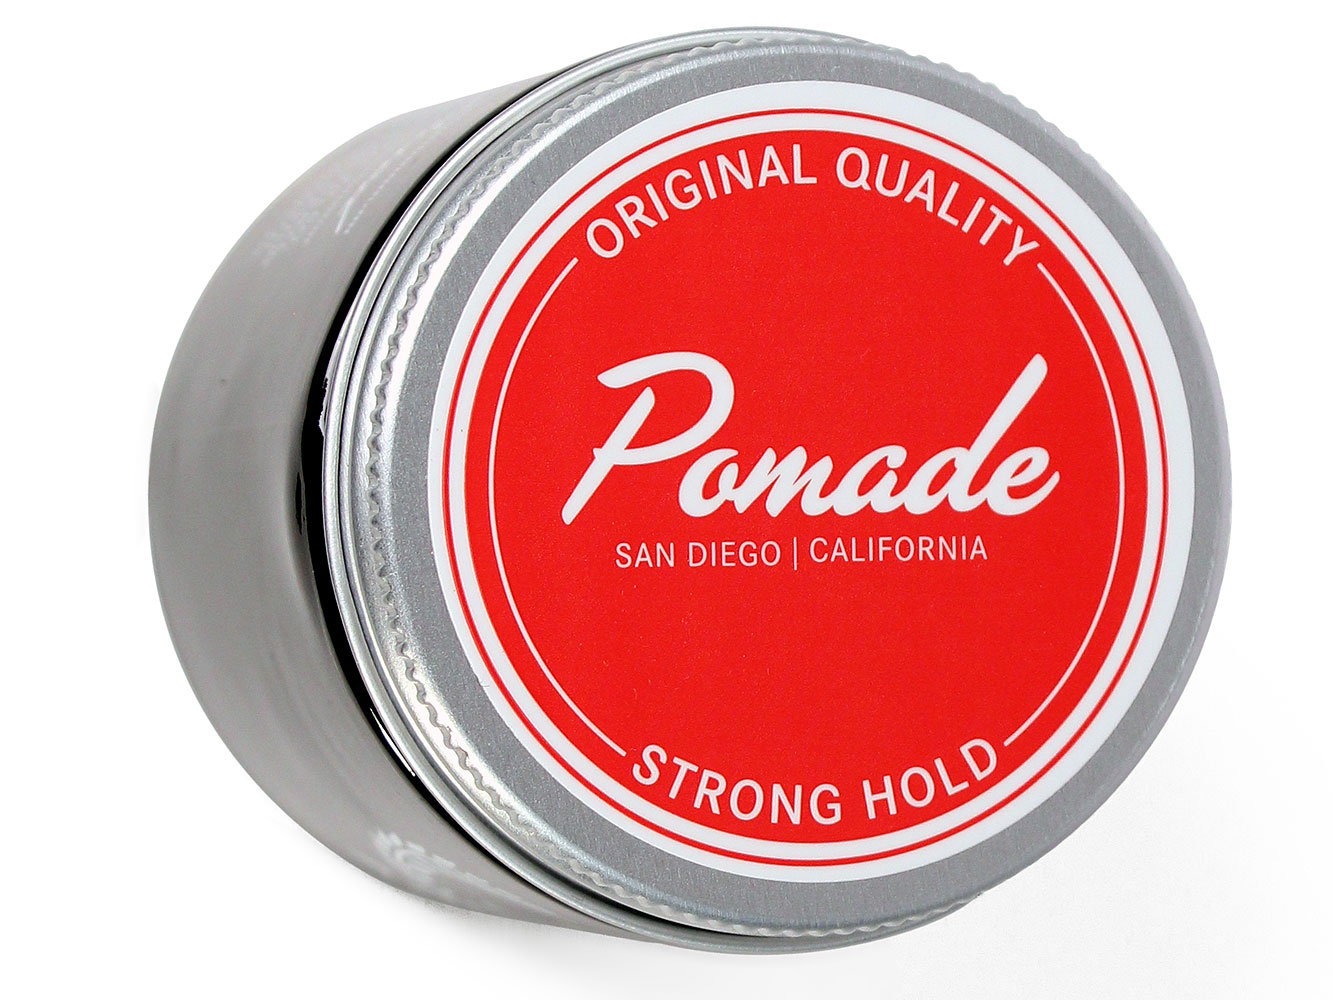 Hair Wax Pomade Murrays Xtra Heavy Hr 465 173 00 Admiral Strong Hold